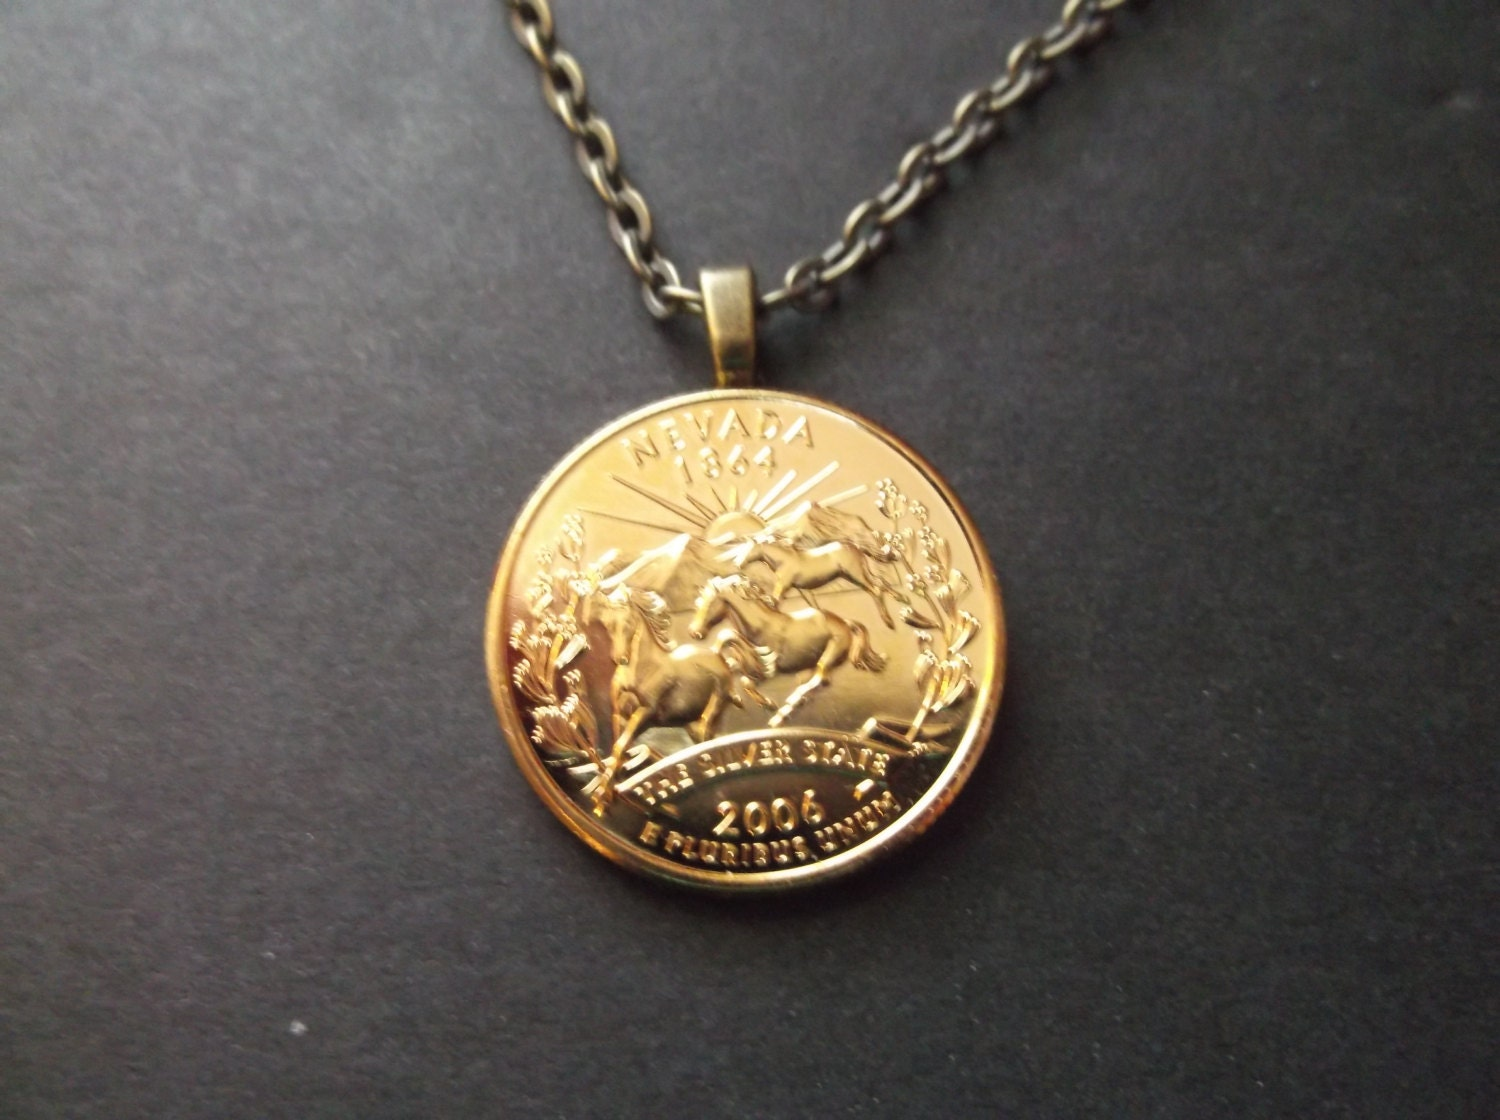 Nevada United States Gold Colored Quarter Coin Necklace United